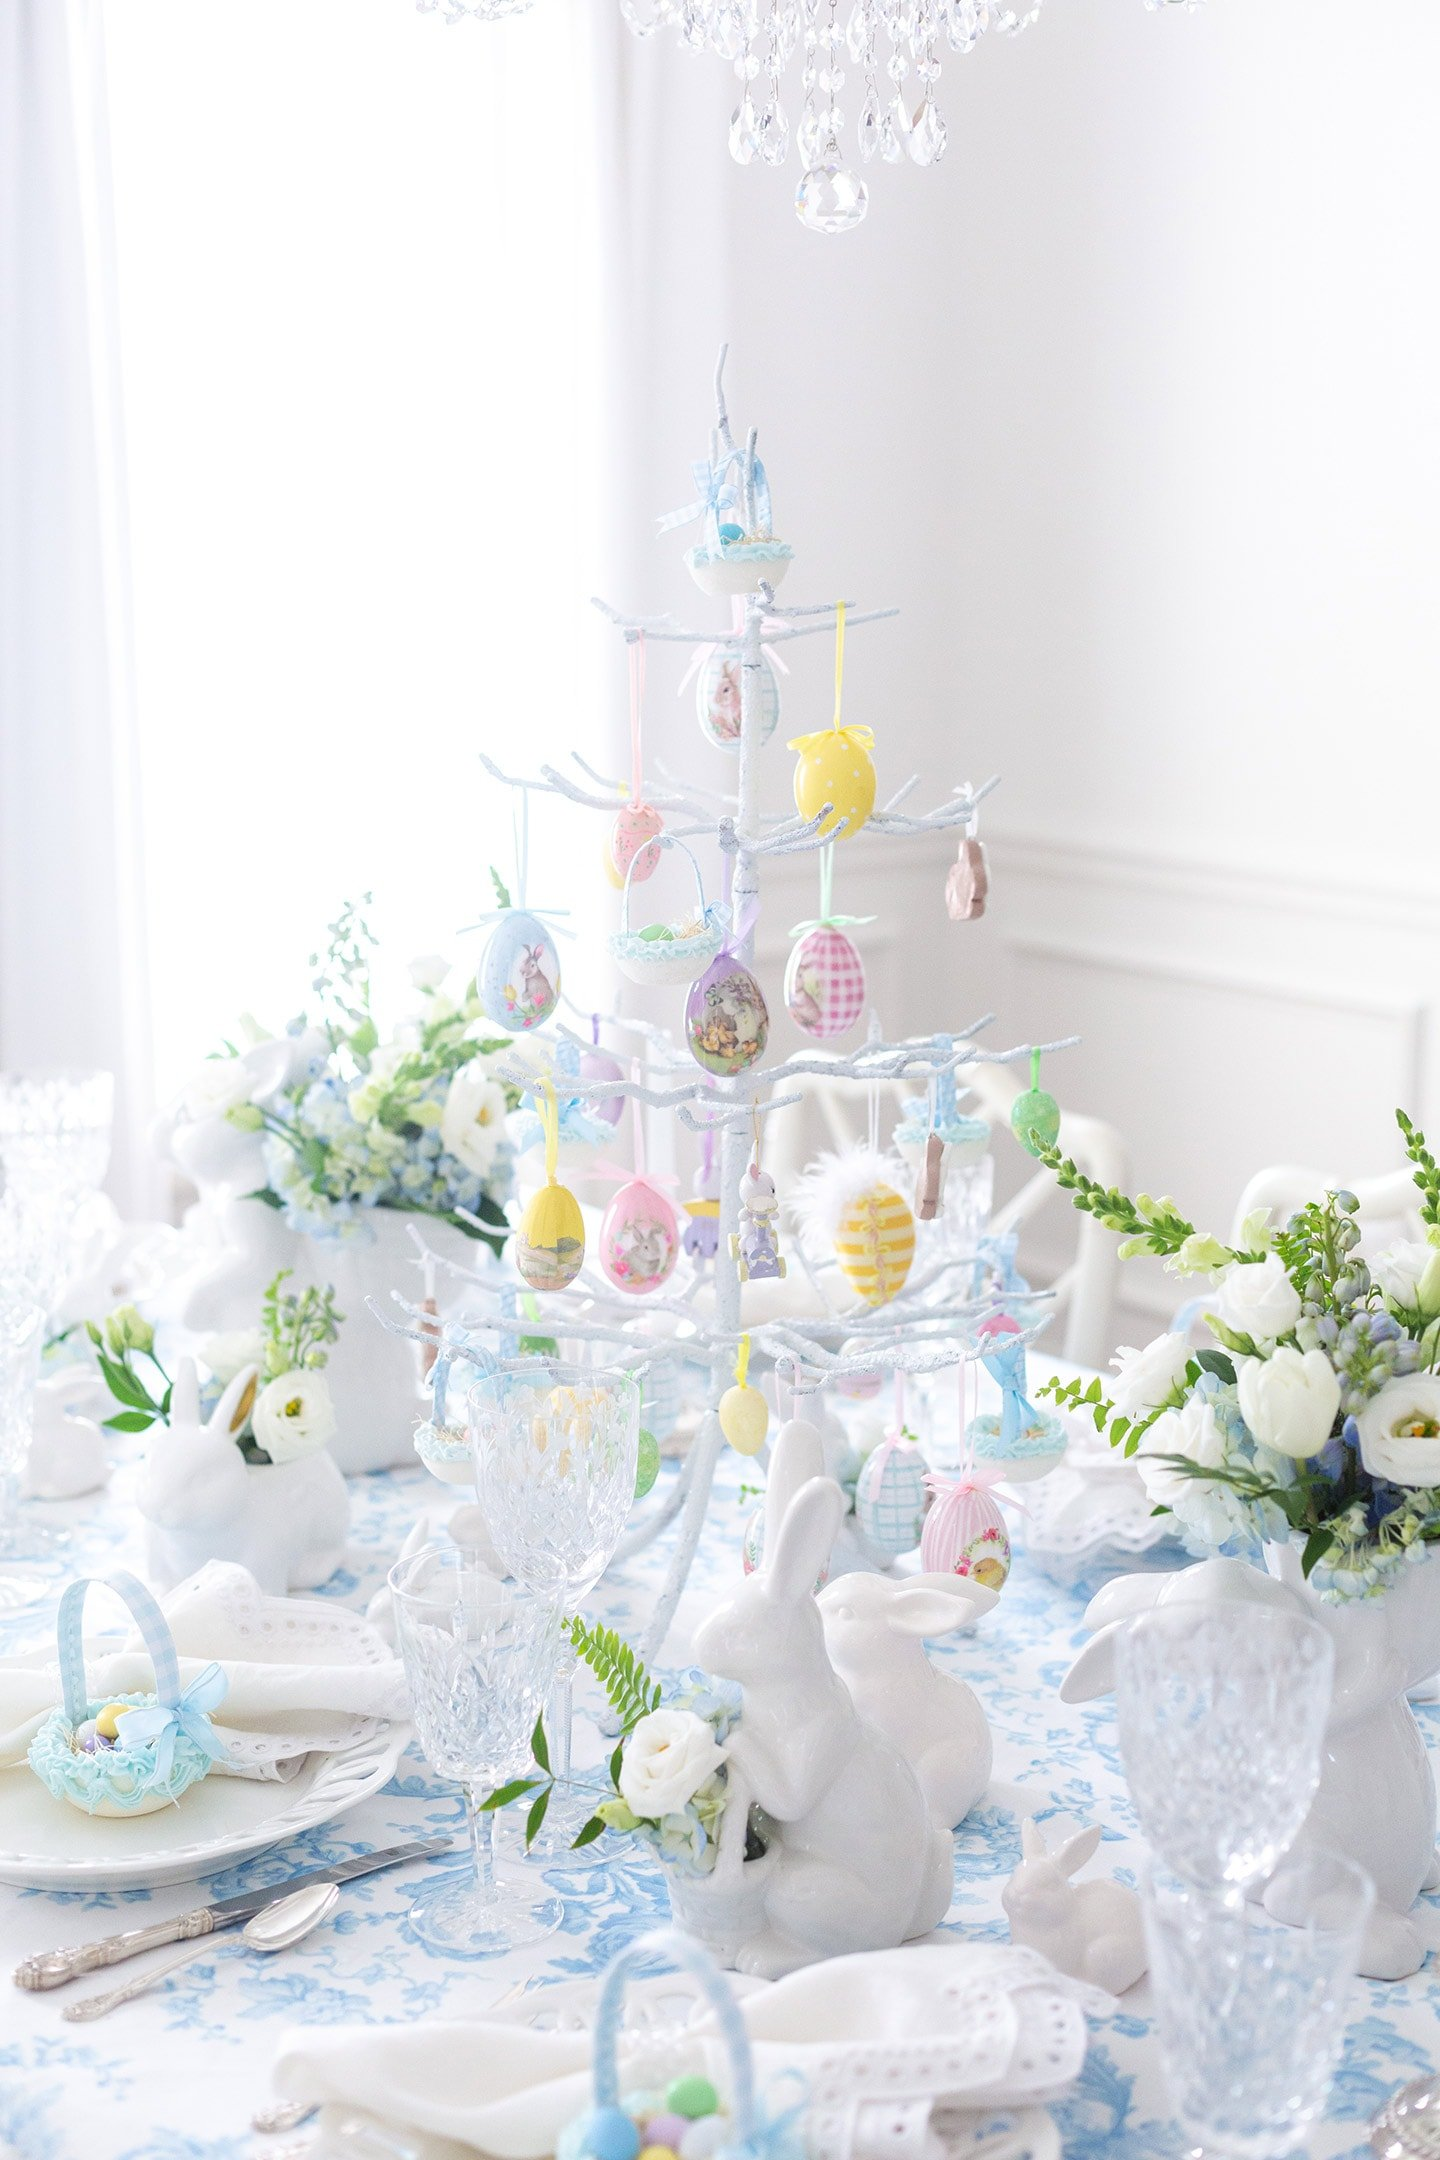 Easter Tree with Eggs for Centerpiece